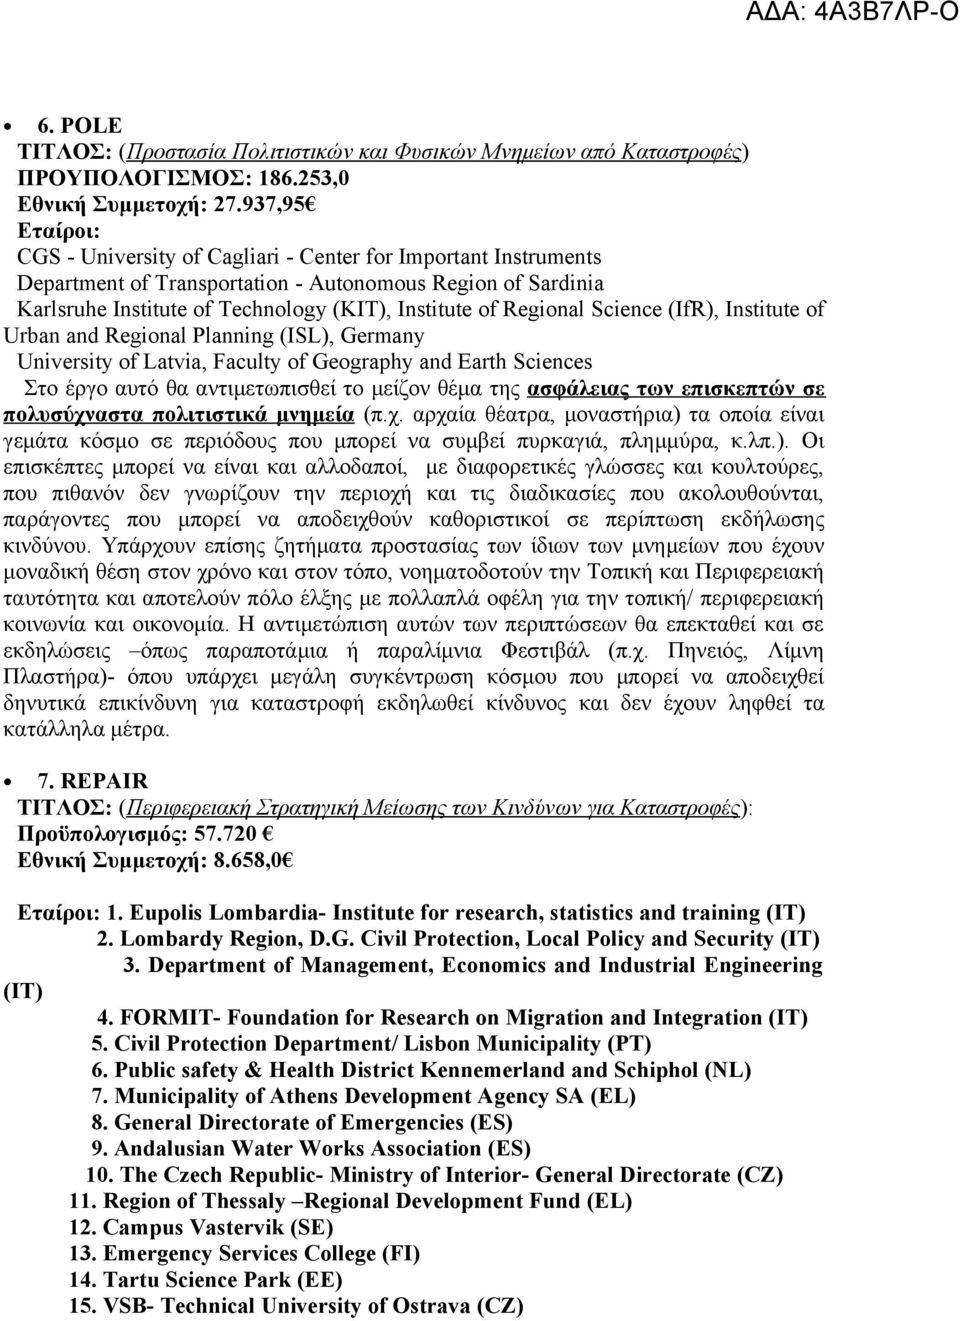 Regional Science (IfR), Institute of Urban and Regional Planning (ISL), Germany University of Latvia, Faculty of Geography and Earth Sciences Στο έργο αυτό θα αντιμετωπισθεί το μείζον θέμα της